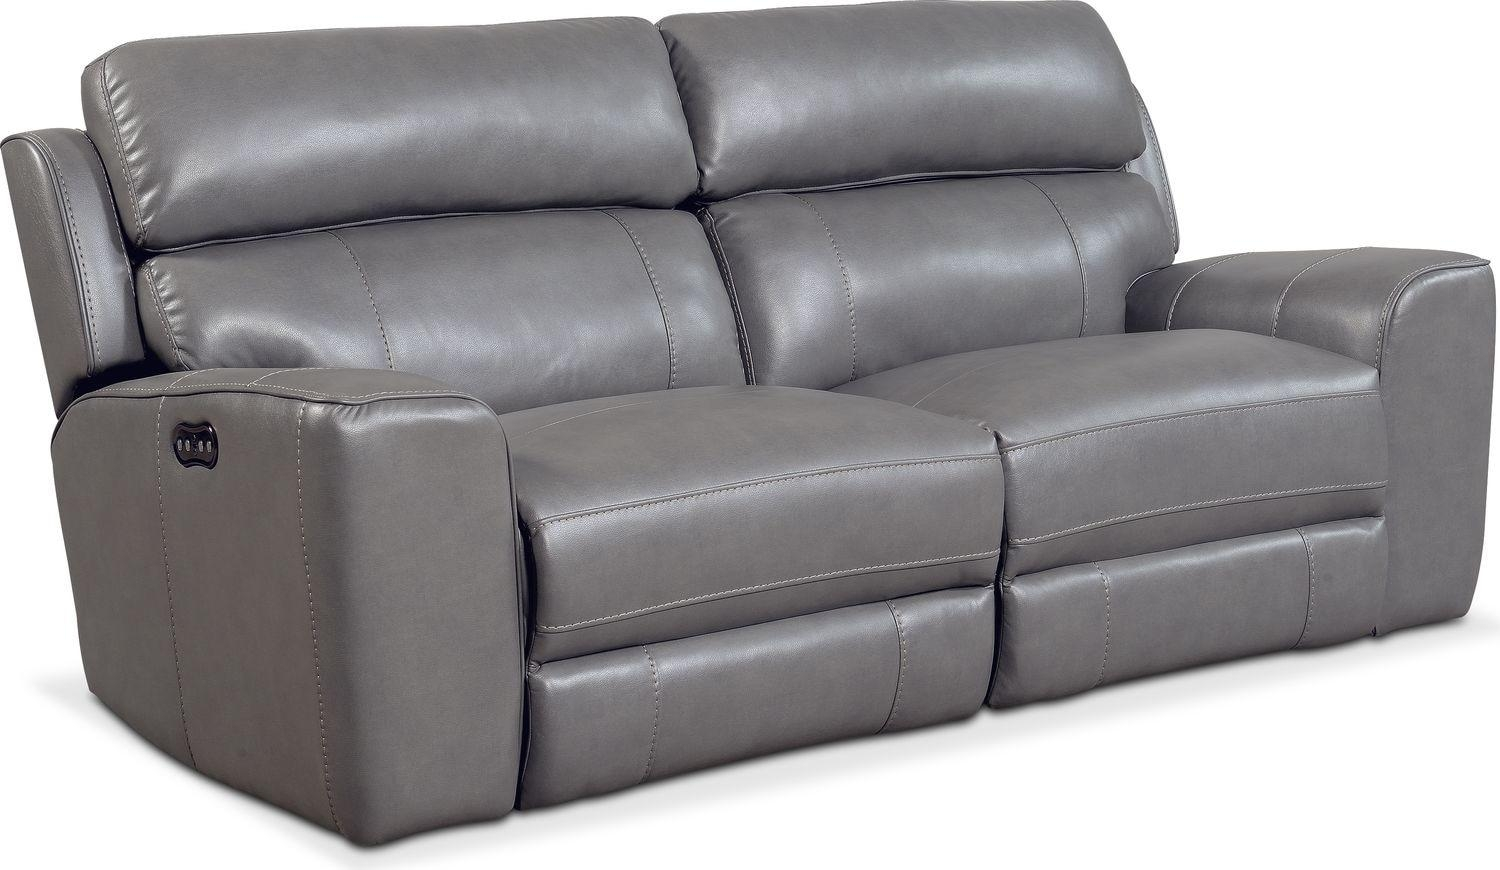 Newport 2 Piece Power Reclining Sofa – Gray | Value City Furniture Pertaining To Newport Sofas (Image 9 of 20)